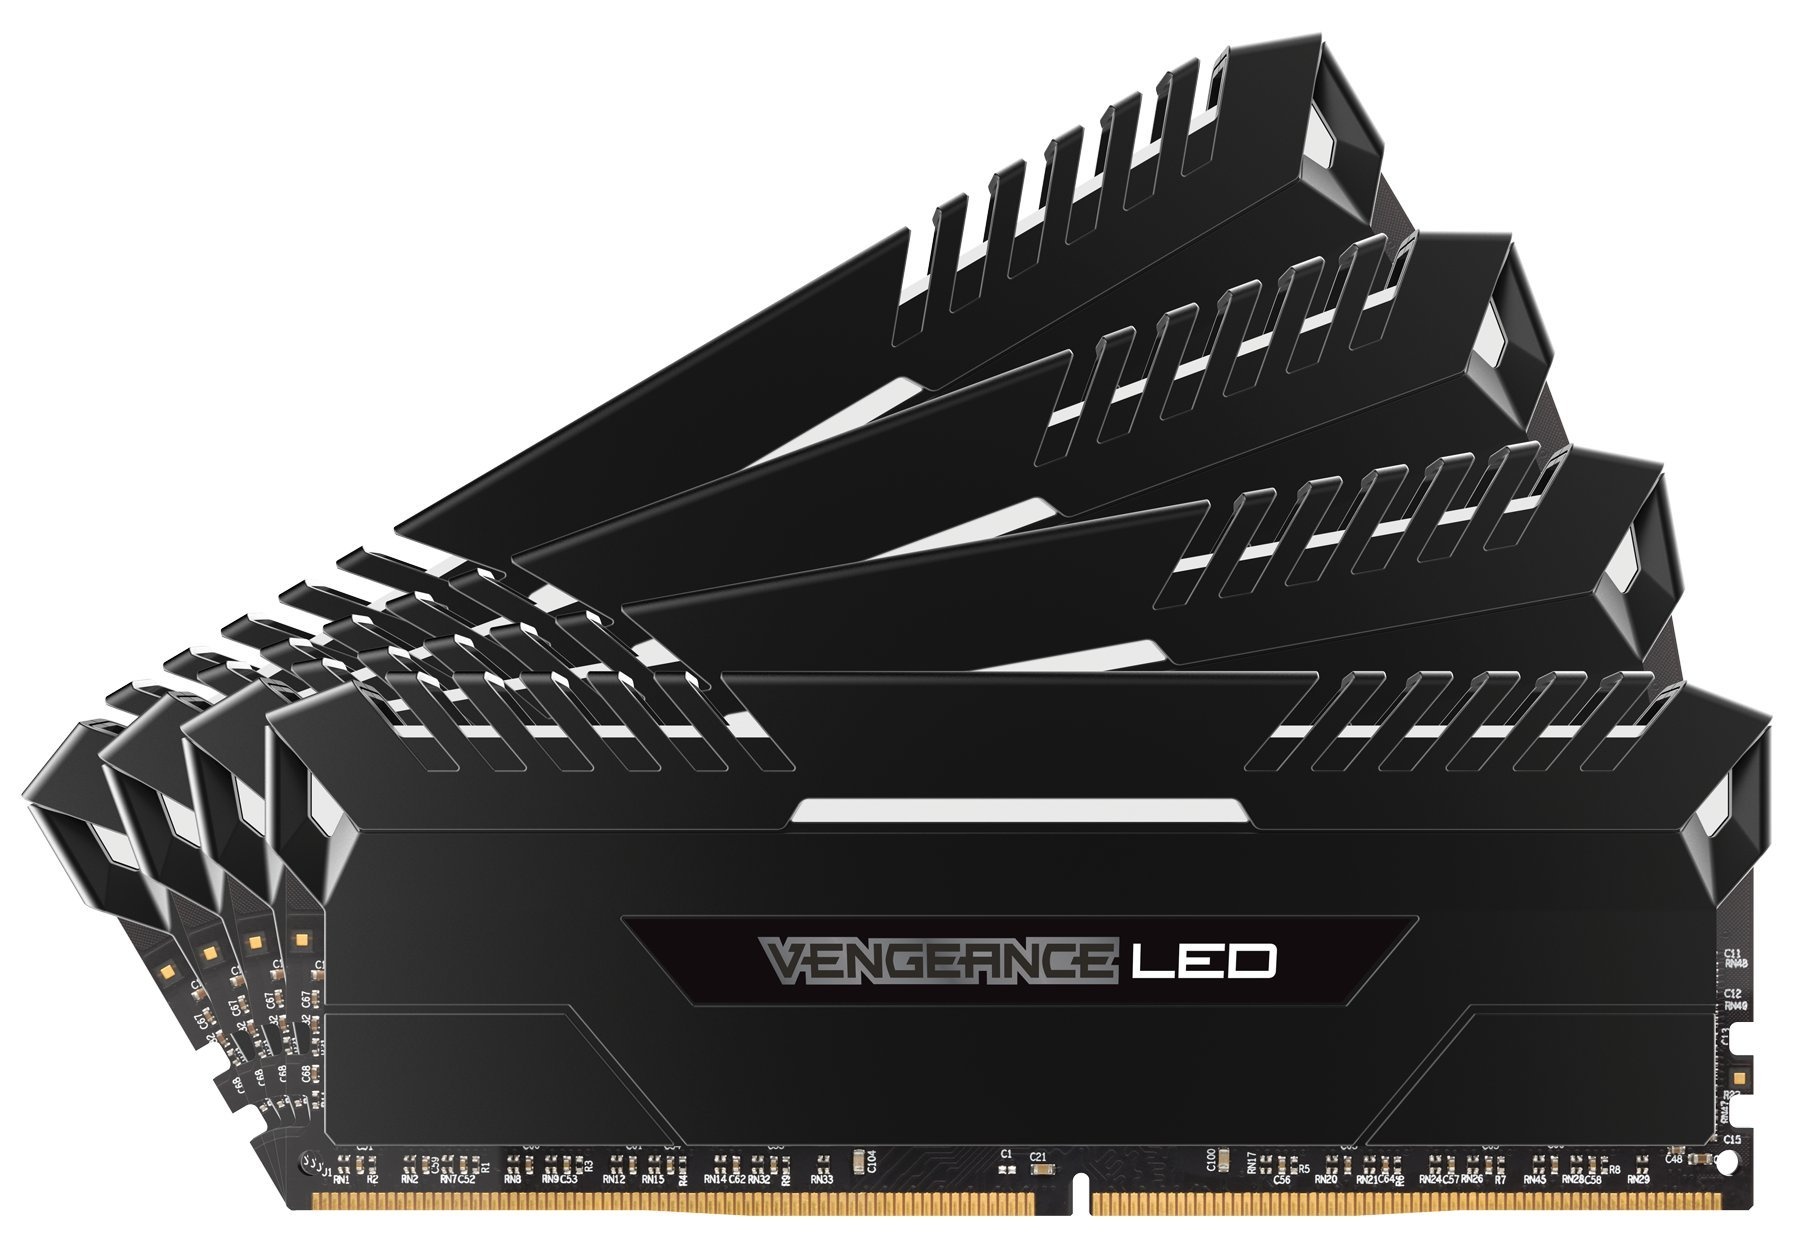 Memoria Ram 32gb Corsair Vengeance Led (4x8gb) Ddr4 3200mhz C16 - White Led